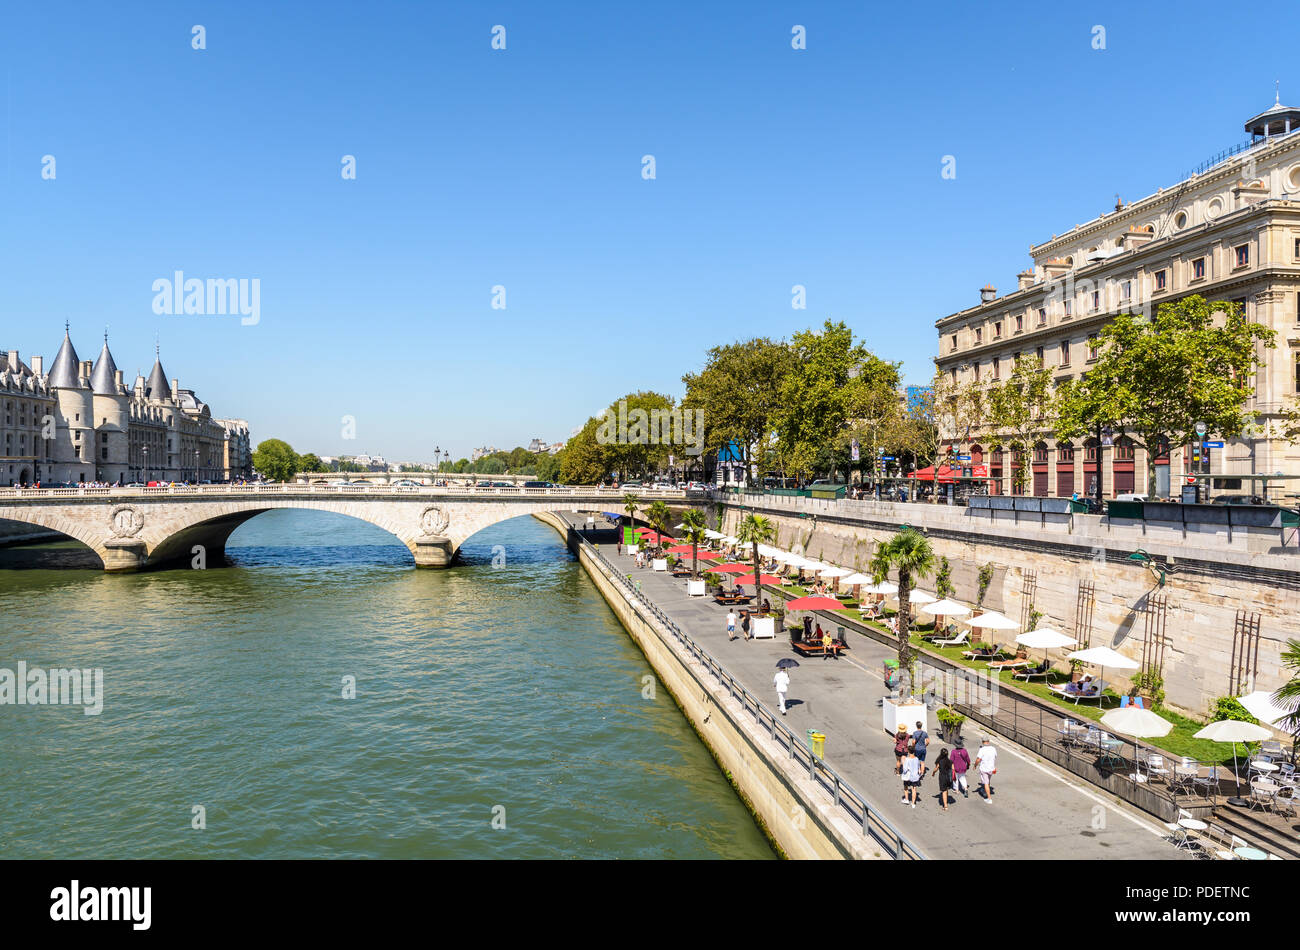 The banks of the Seine during Paris-Plages summer event in Paris, France, with the Pont au Change bridge and the Palais de la Cite in the background. - Stock Image